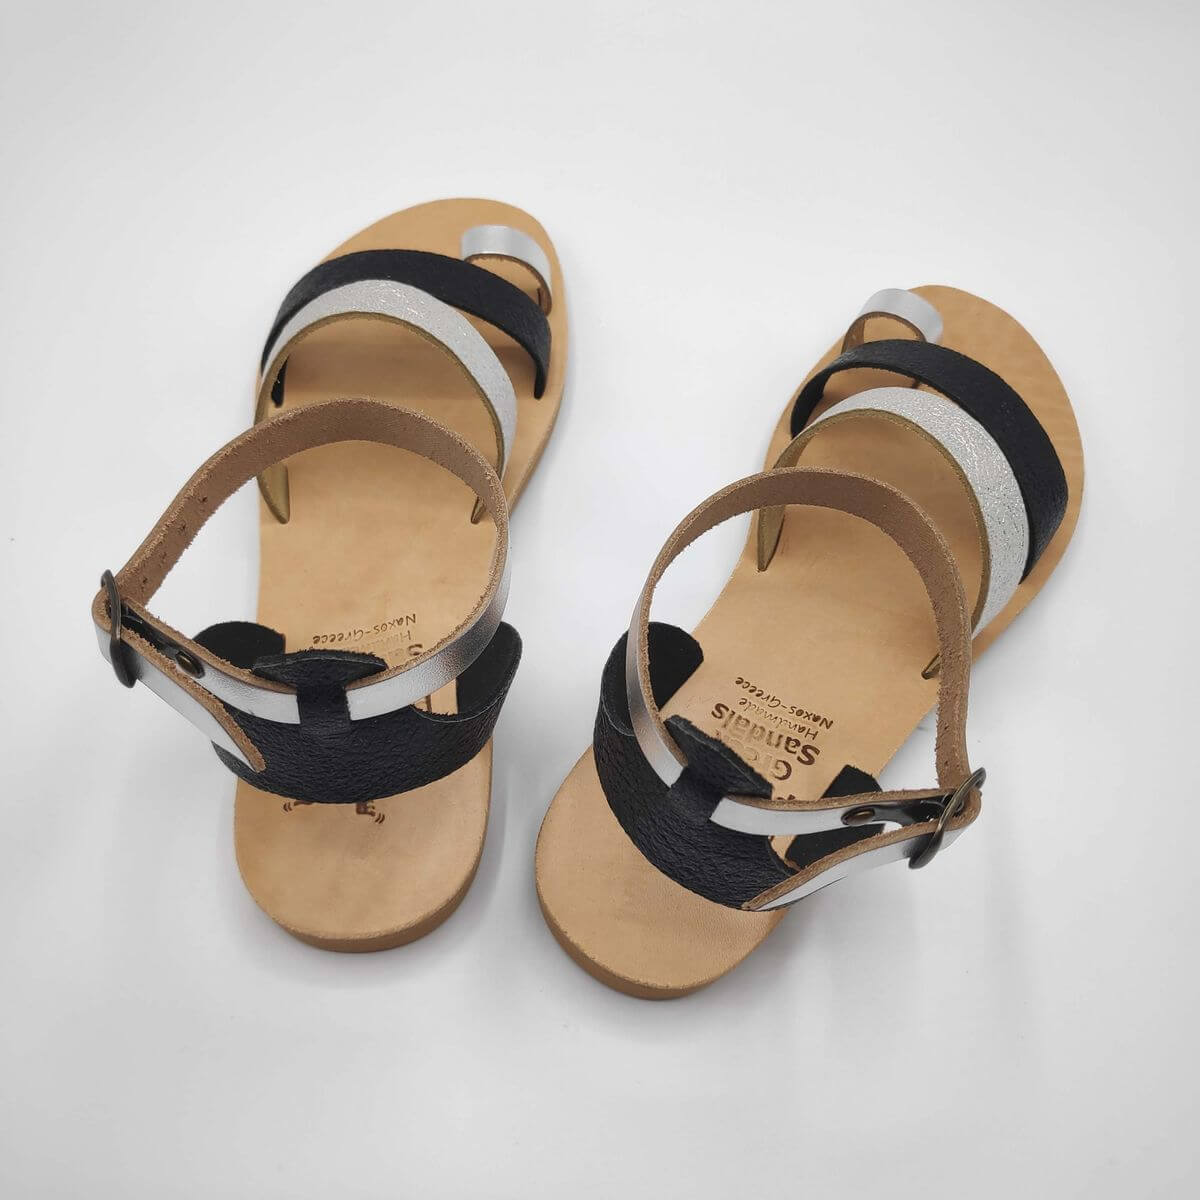 Black Silver leather dressy sandals with two straps, toe ring and high ankle strap, back view